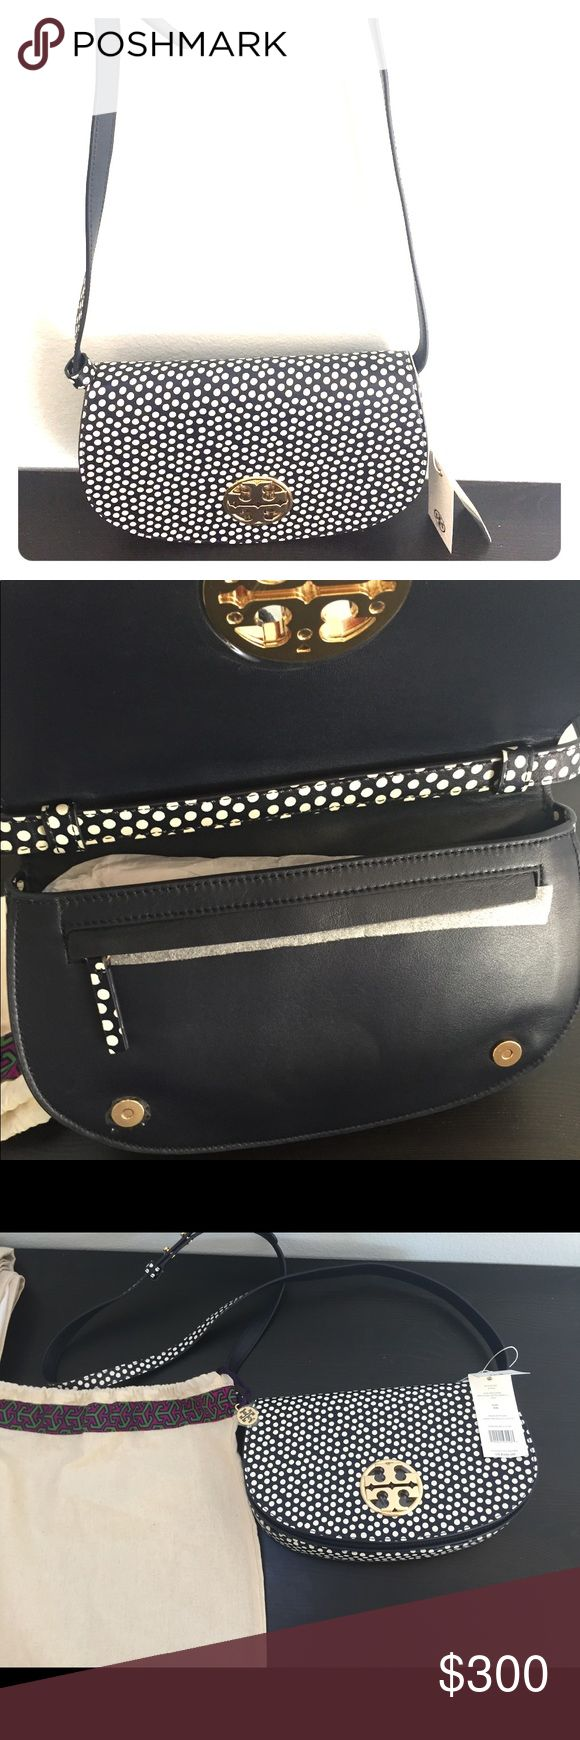 Tory Burch Jamie Printed Clutch Navy blue and white clutch Tory Burch Bags Clutches & Wristlets